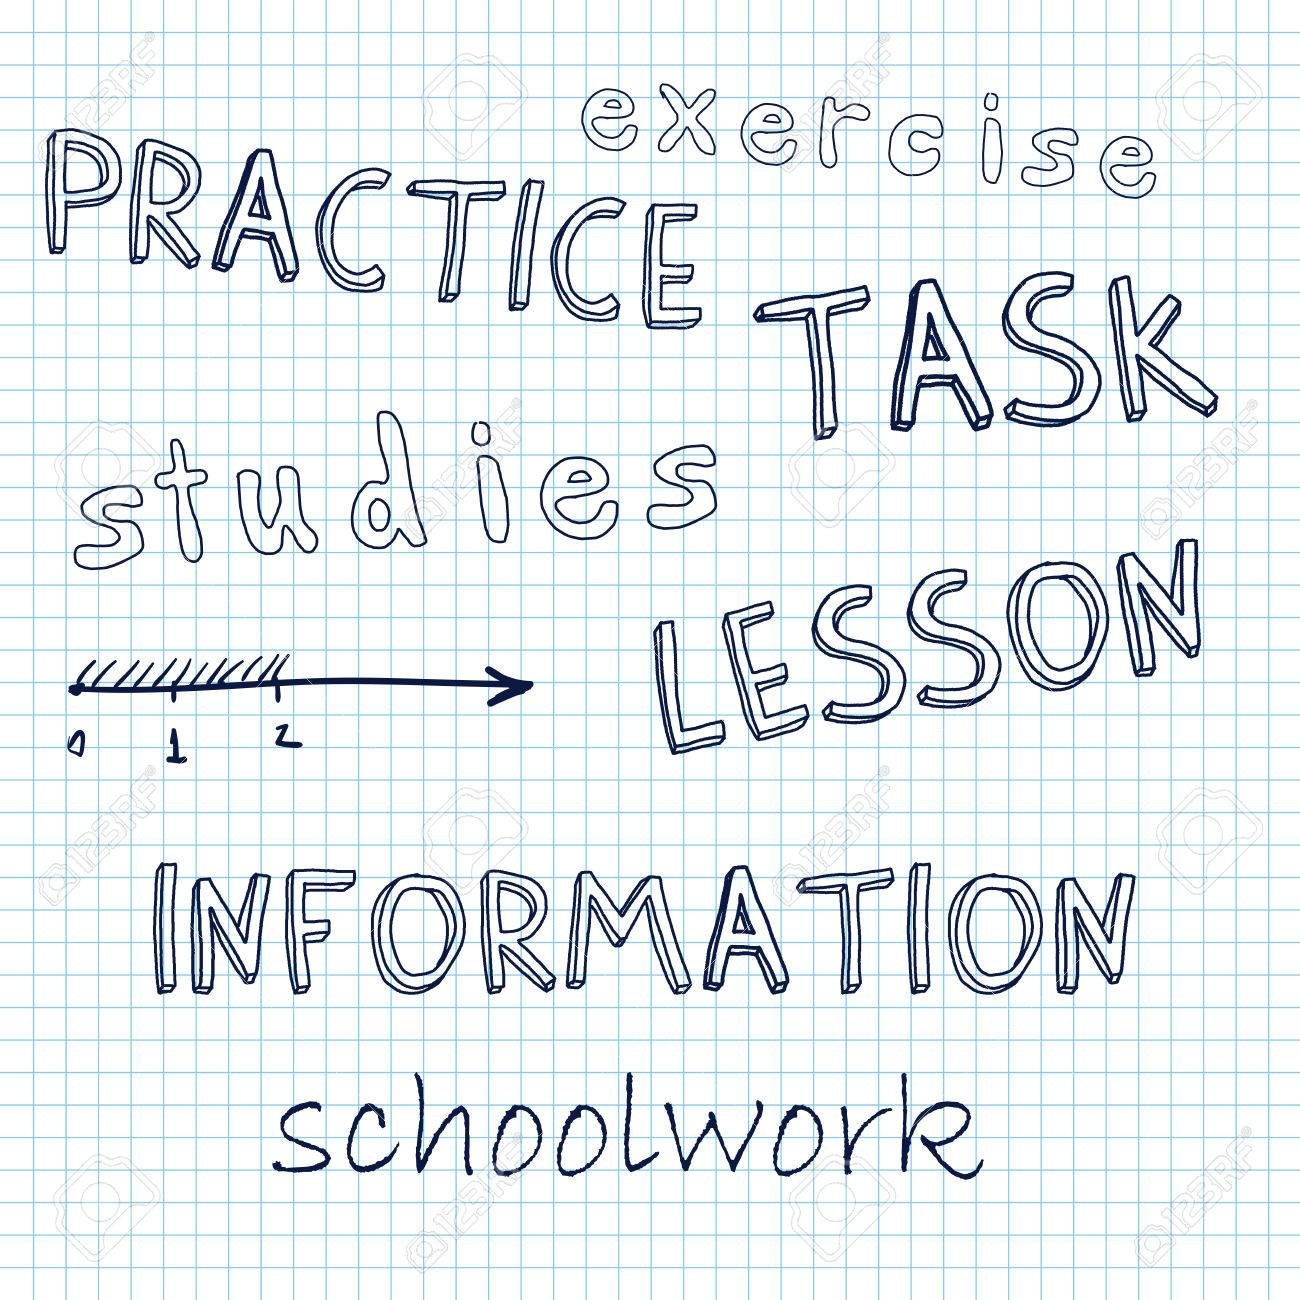 Doodle Math, Lesson, Schoolwork, Written By Hand On A Sheet Of ...